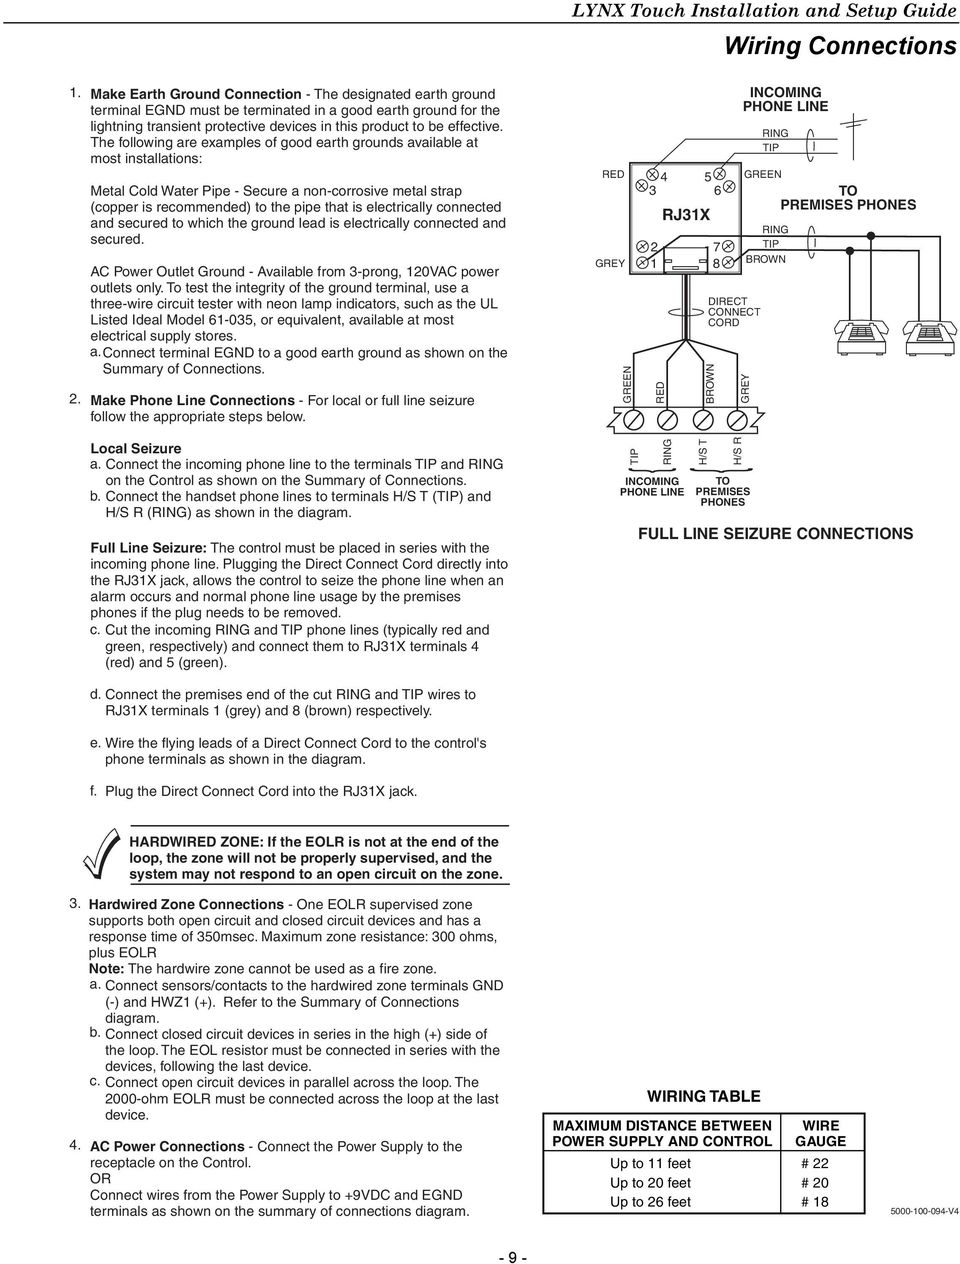 rj31x wiring diagram wiring library phone wiring diagram dorable rj31x wiring diagram to alarm system pattern electrical rj31x wiring diagram to